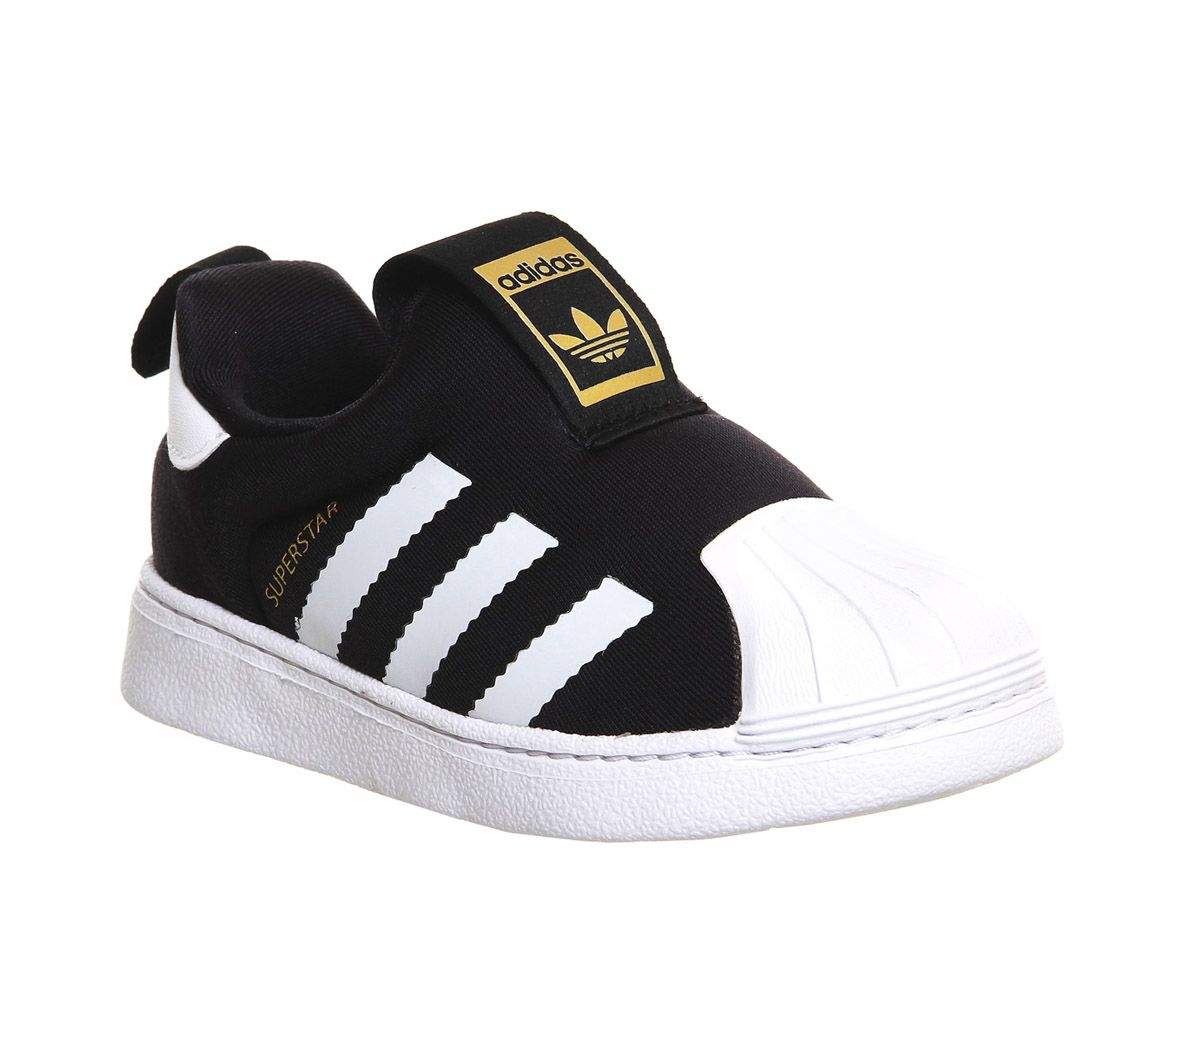 new concept 1e9cf 9c98a adidas Superstar 360 Inf 3-9 Core Black - Unisex